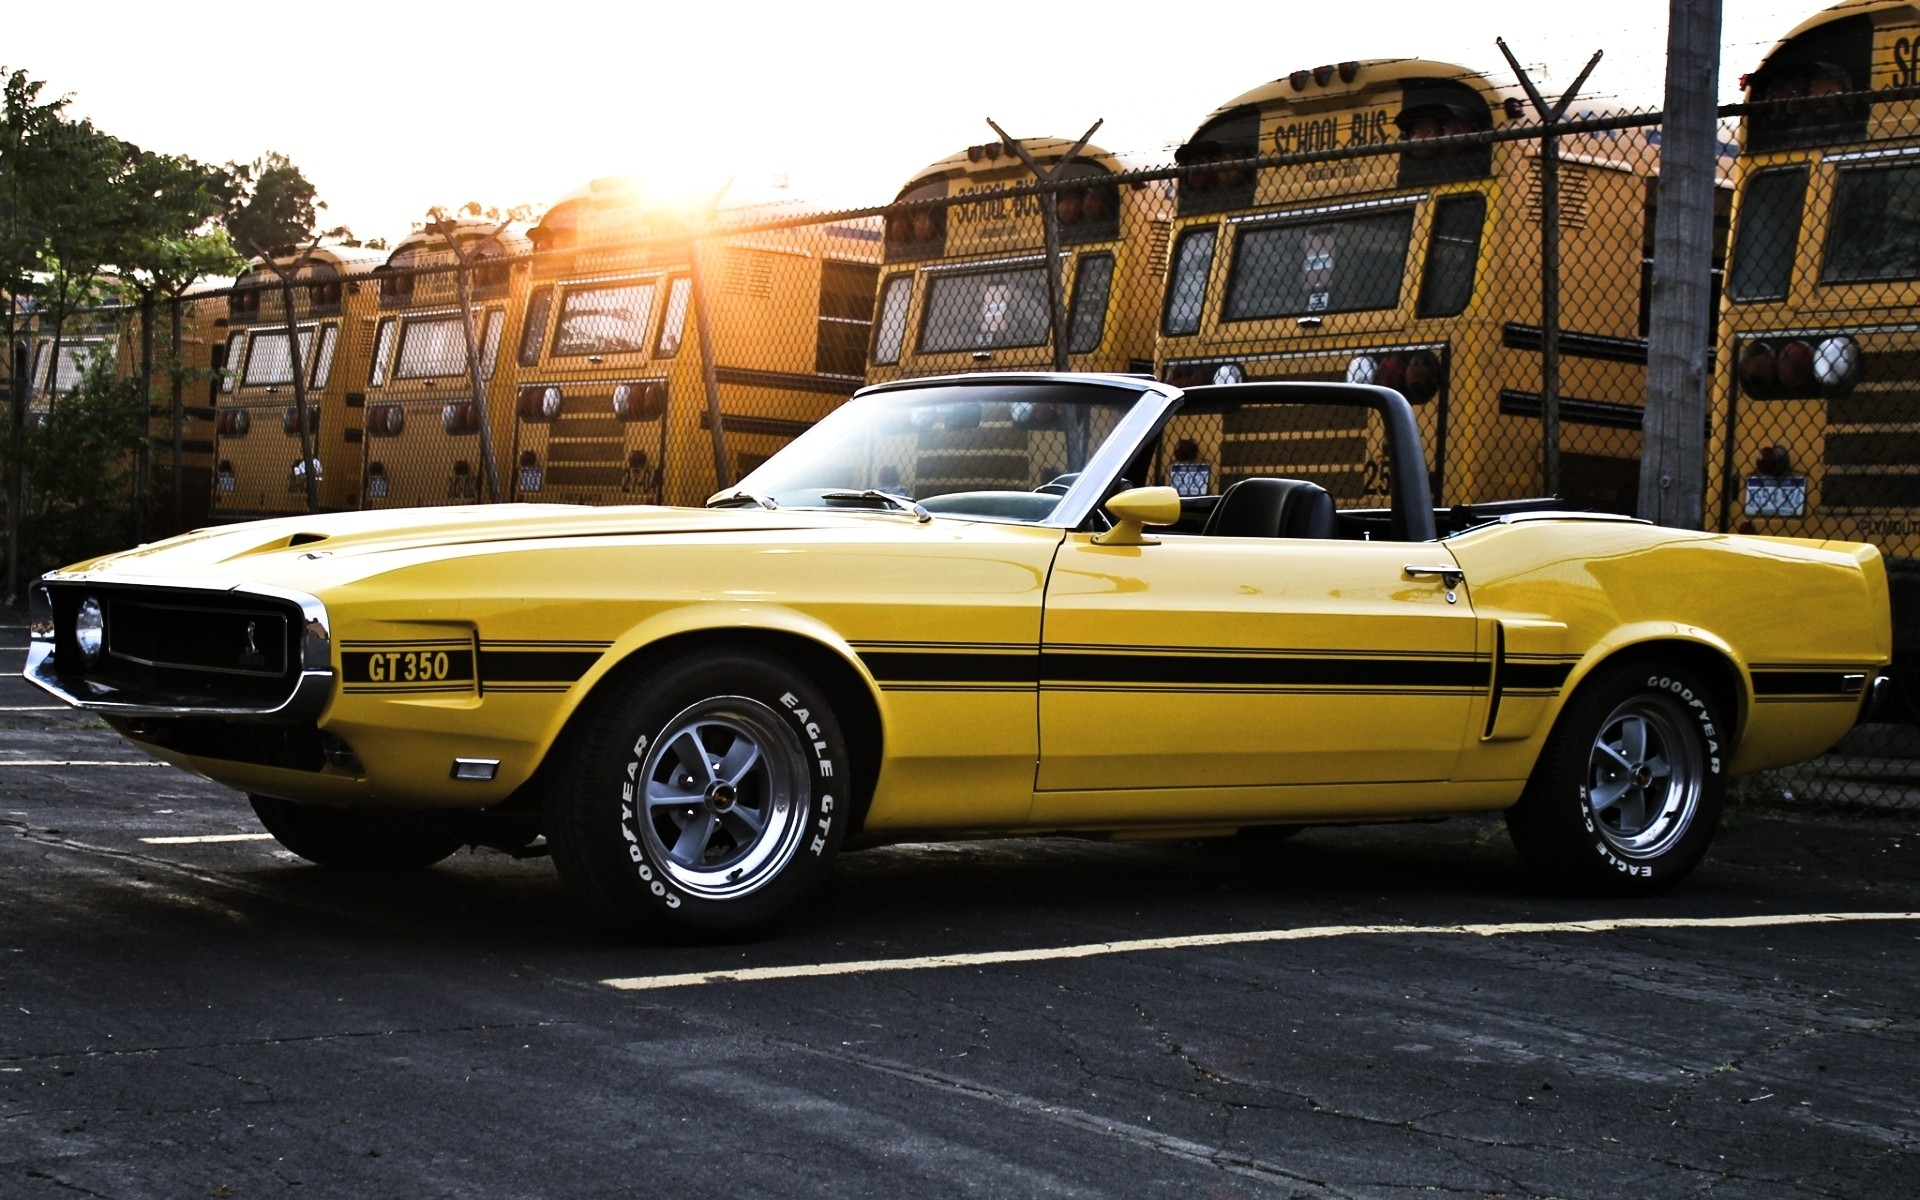 yellow cars muscle cars vehicles ford mustang shelby gt350 old cars yellow cars wallpaper 1920x1200 56058 wallpaperup - Old Mustang Muscle Cars